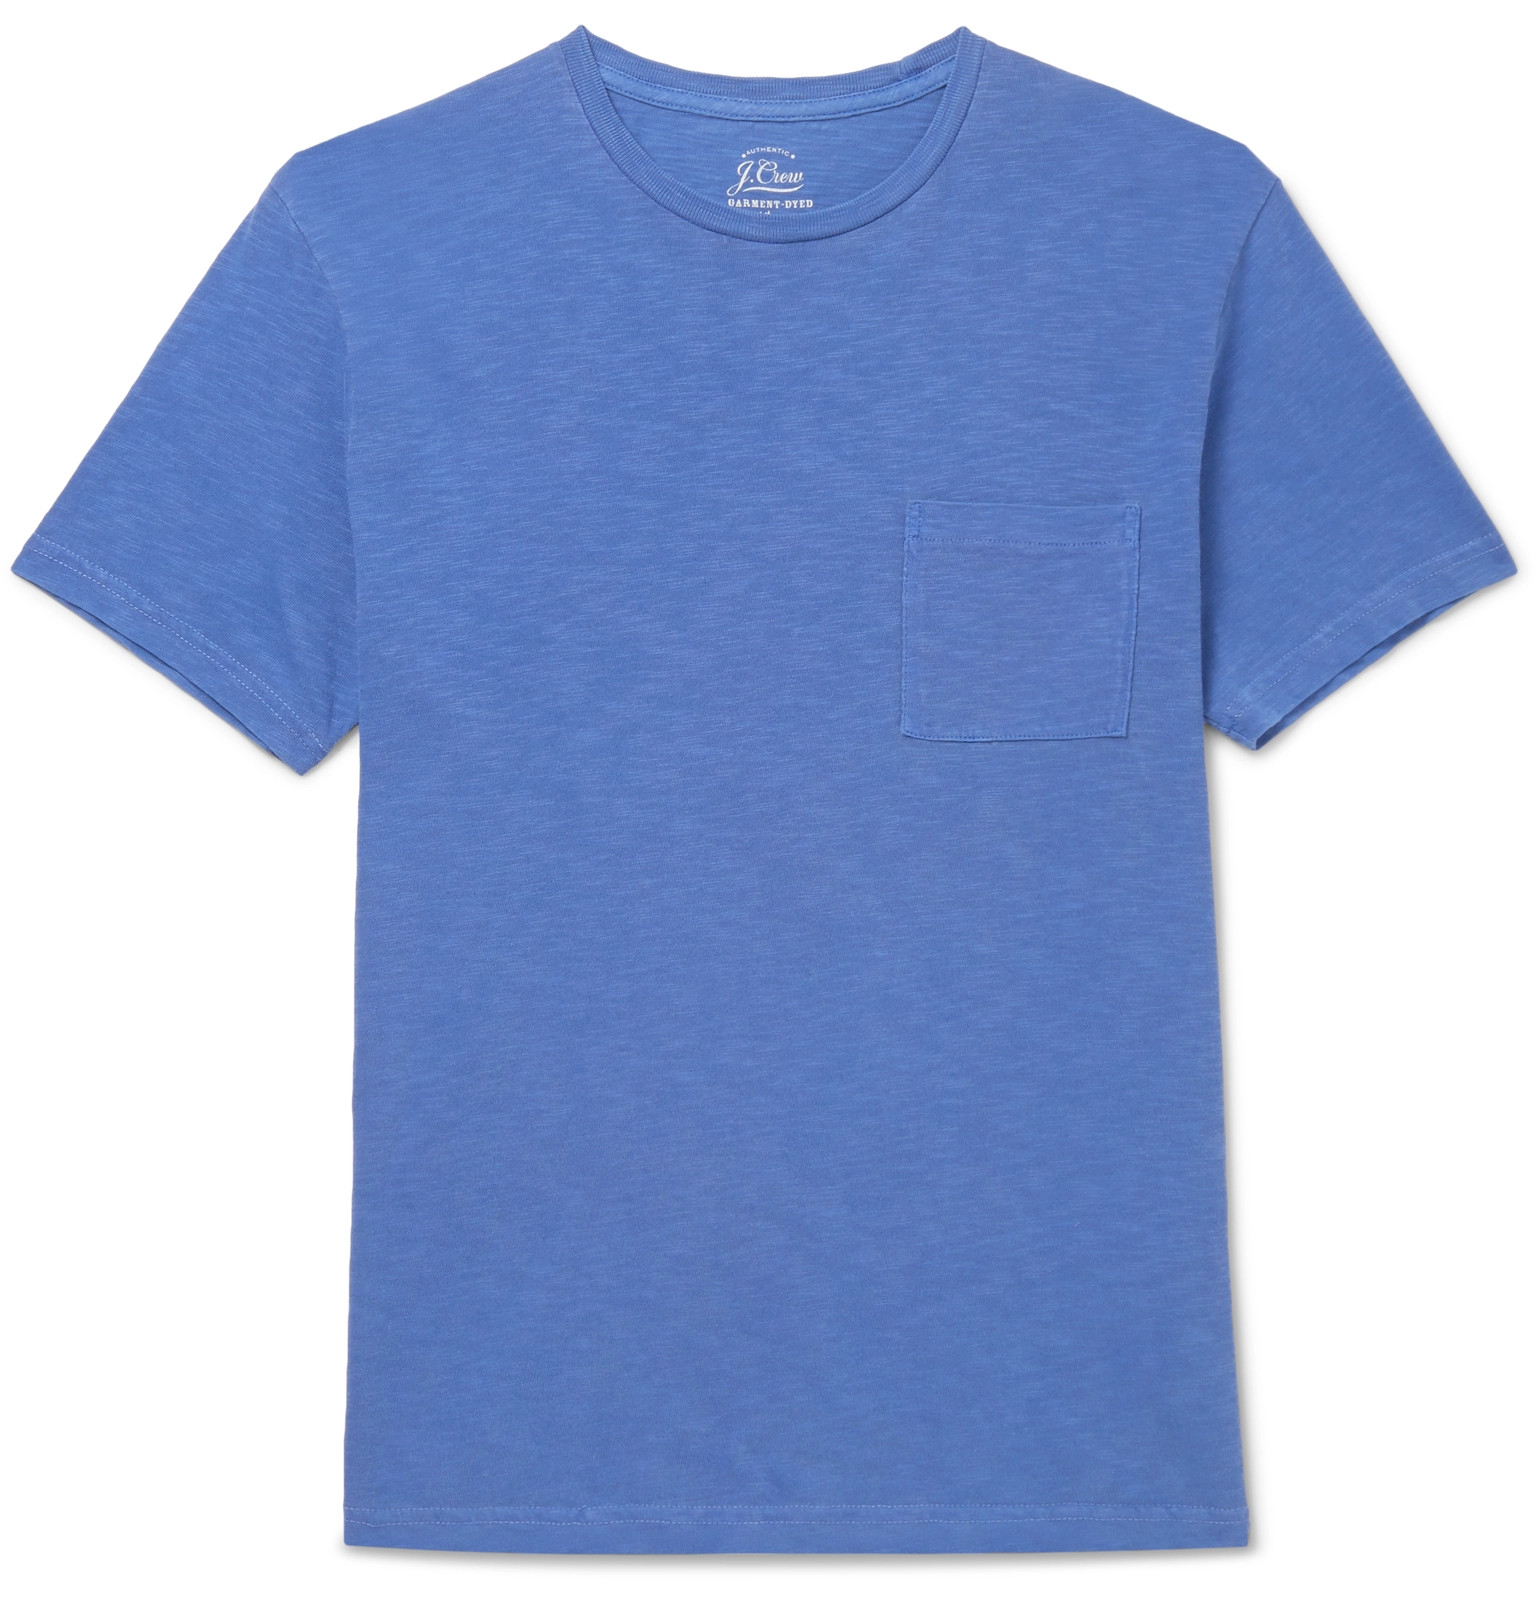 Garment-dyed Slub Cotton-jersey T-shirt J.crew 2018 Newest 100% Authentic Online Manchester Great Sale For Sale Fashion Style For Sale ucFegNaK